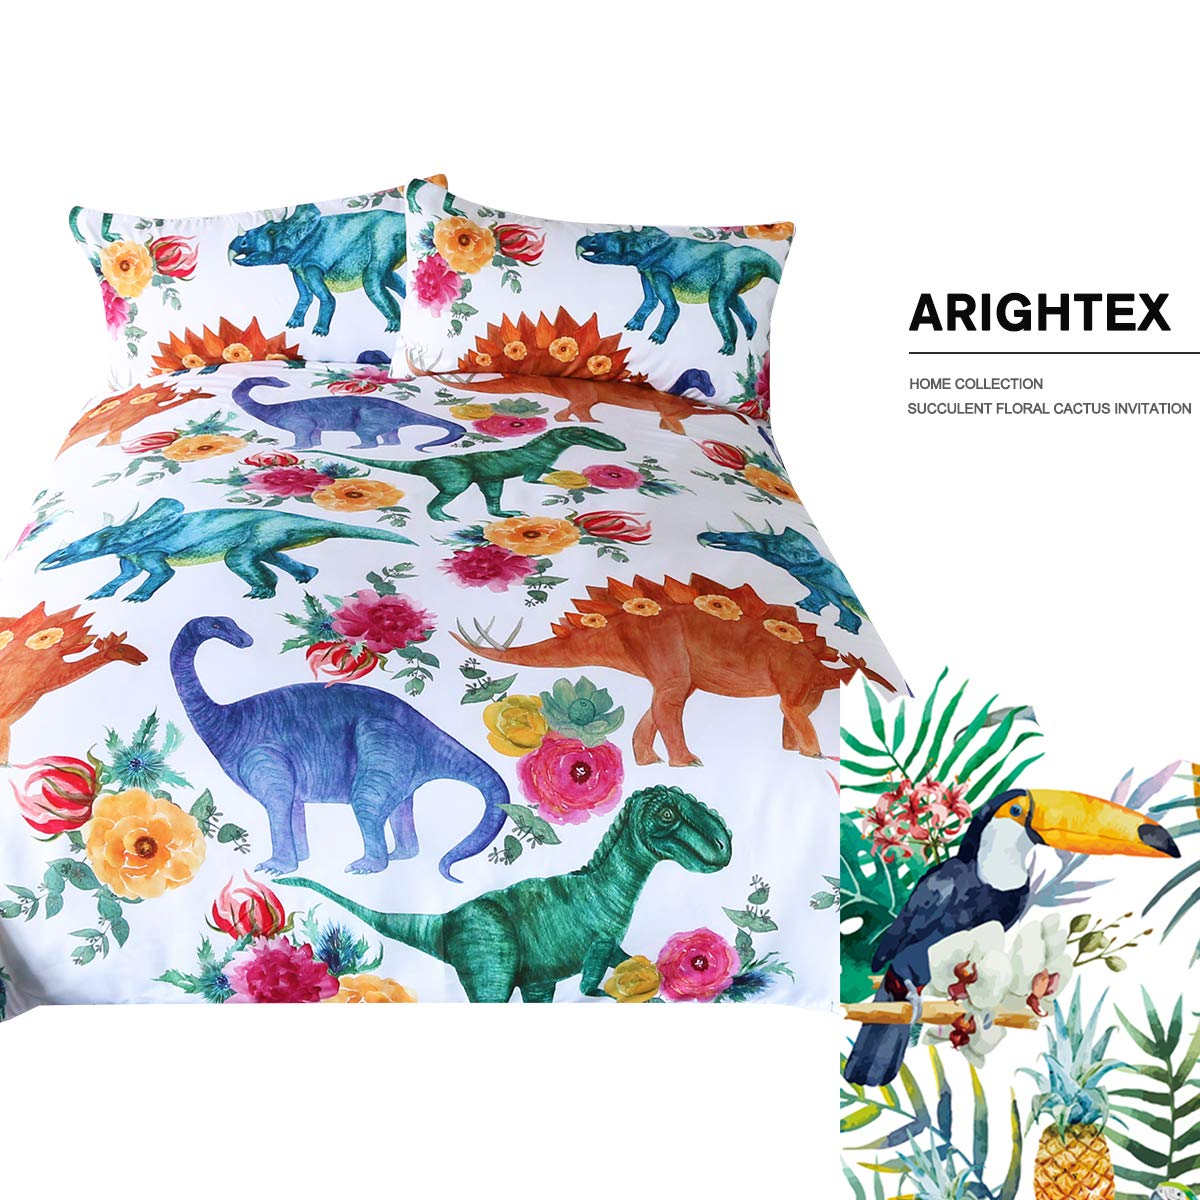 ARIGHTEX Boys Dinosaur Twin Size Bedding Watercolor Dinosaurs in Blue Green 3 Pieces Girly Flowers Duvet Cover Set by ARIGHTEX (Image #2)